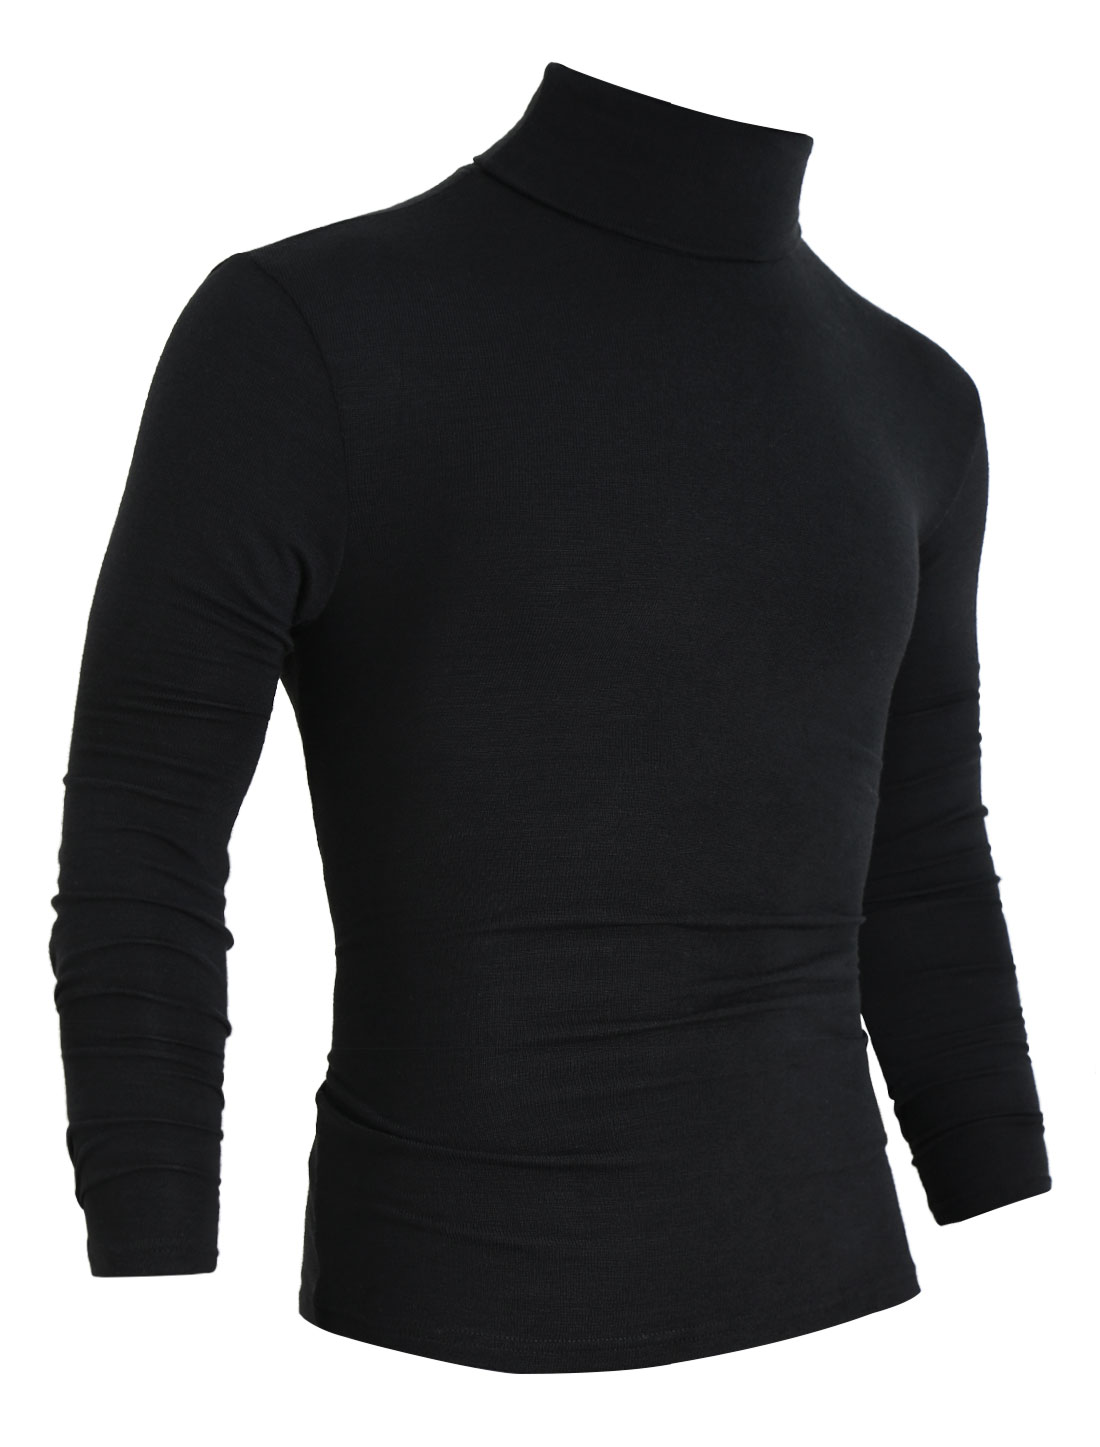 Men Turtle Neck Long Sleeve Slim Fit Shirt Black L